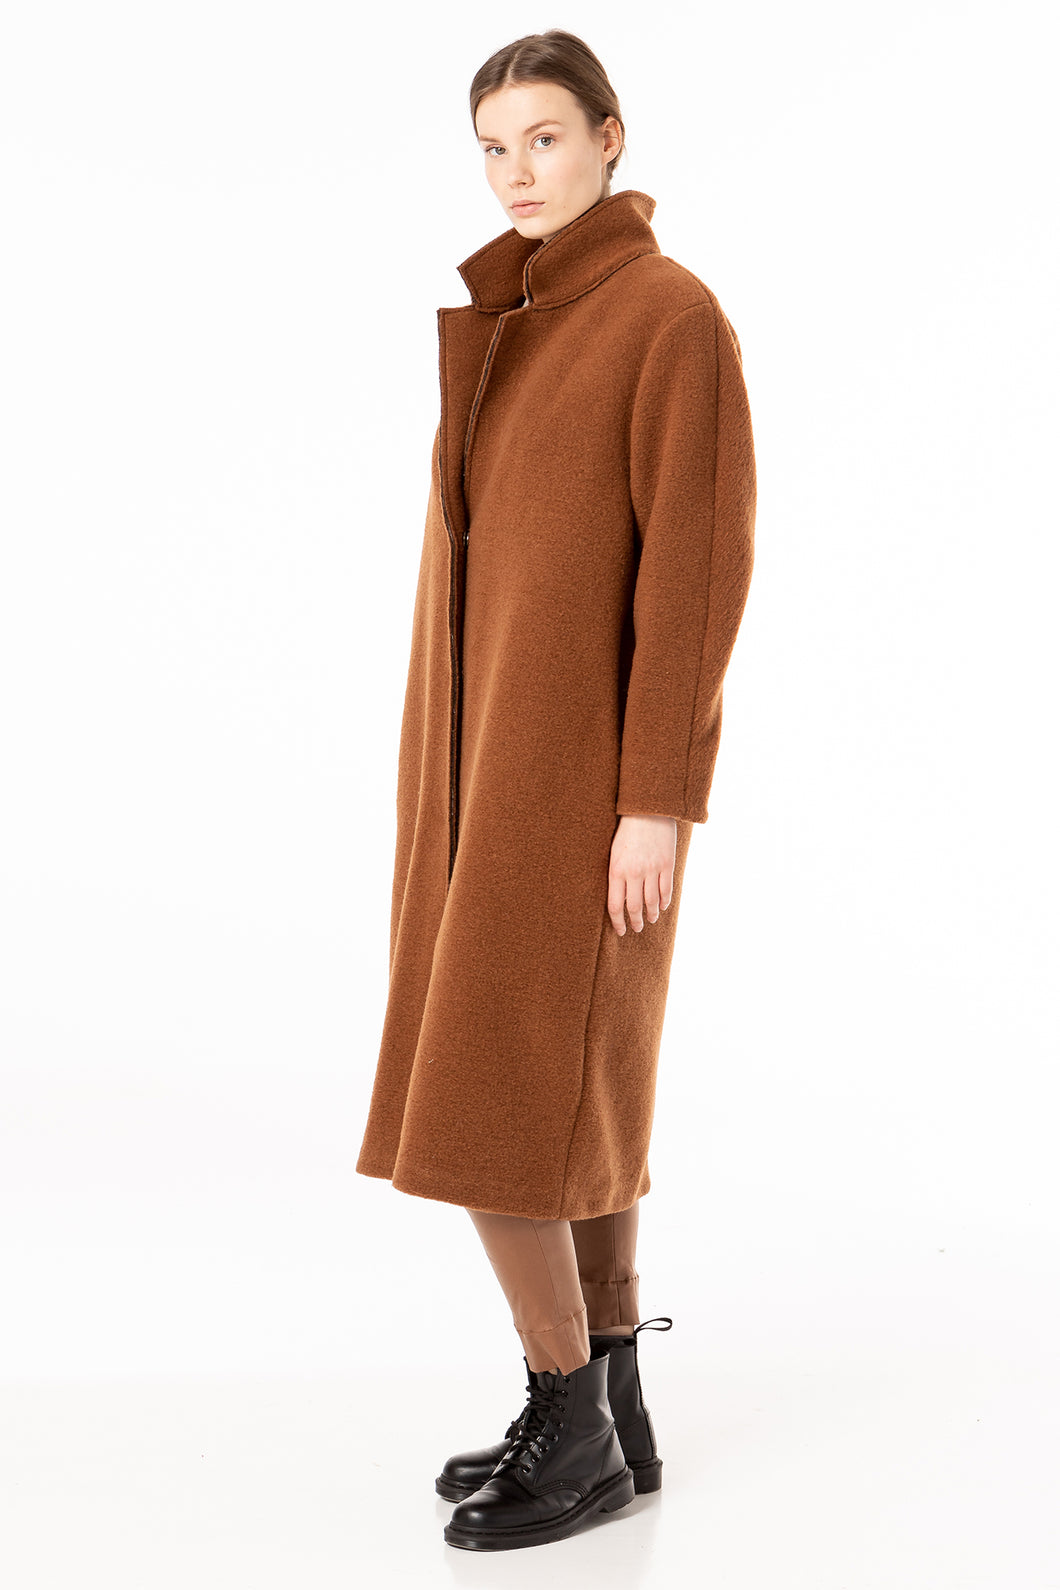 Winter coat in colour of terra cotta